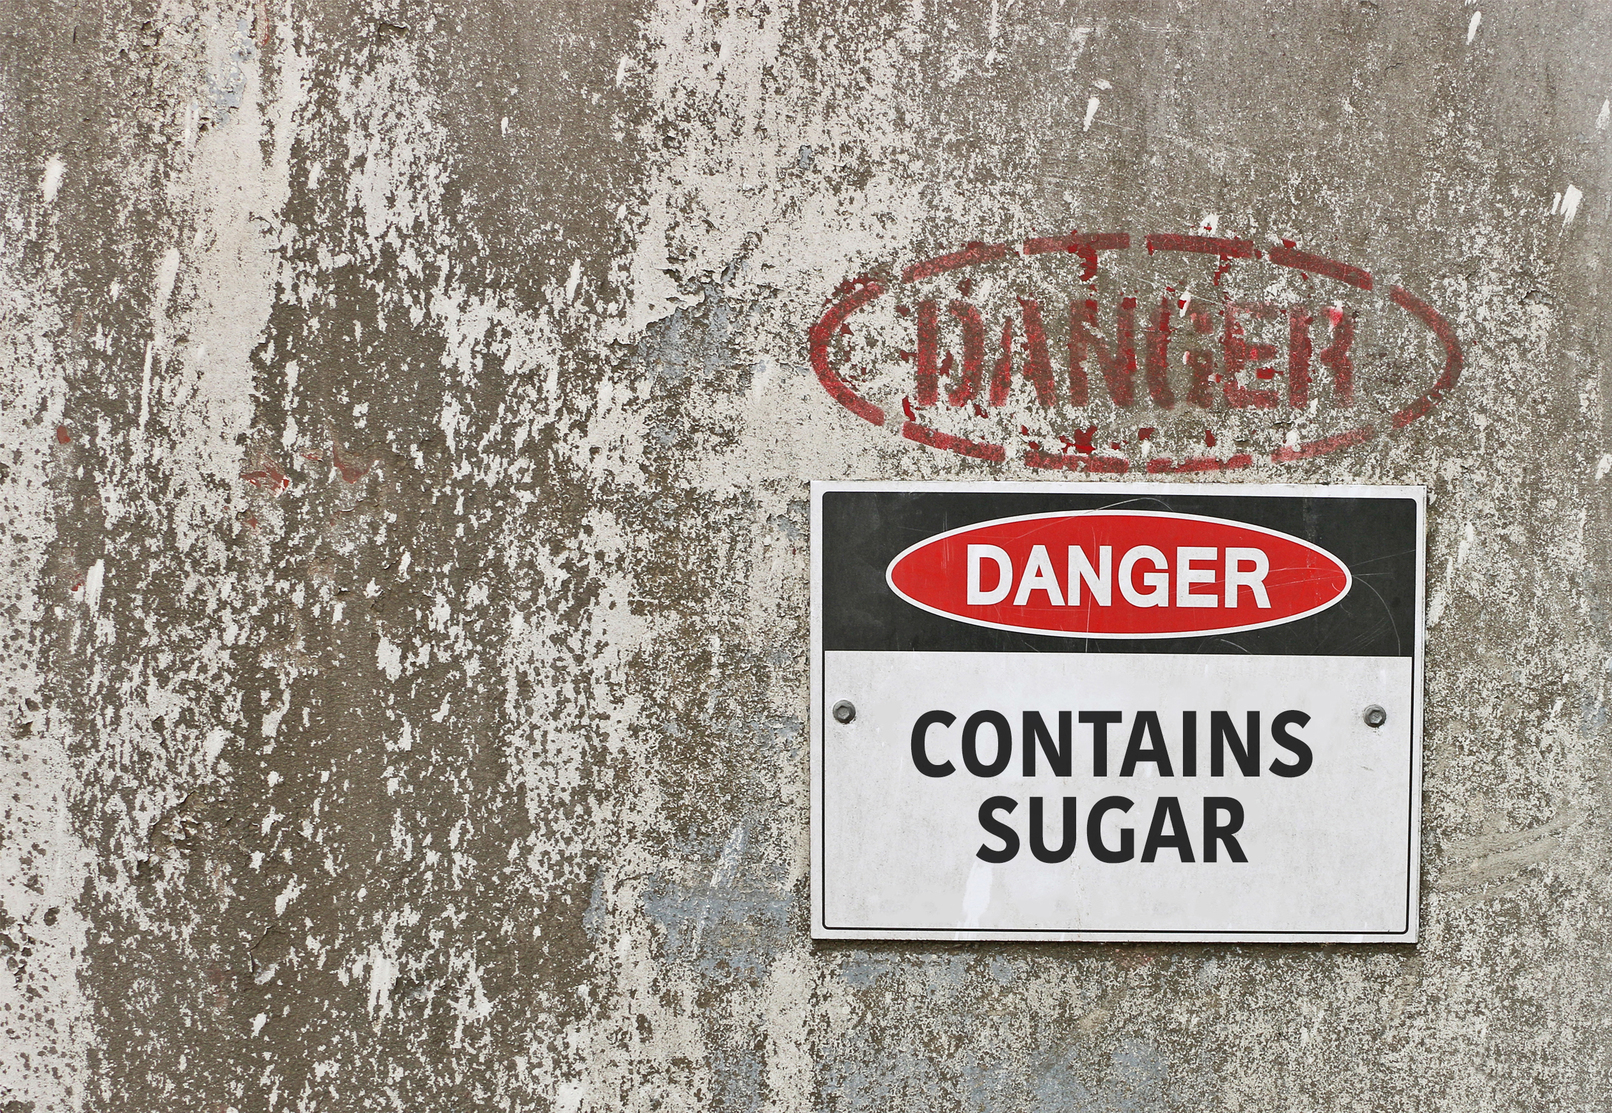 En Banc United States Court of Appeals for the Ninth Circuit Rules That Warnings for Sugar Sweetened Beverages Likely Violates the First Amendment